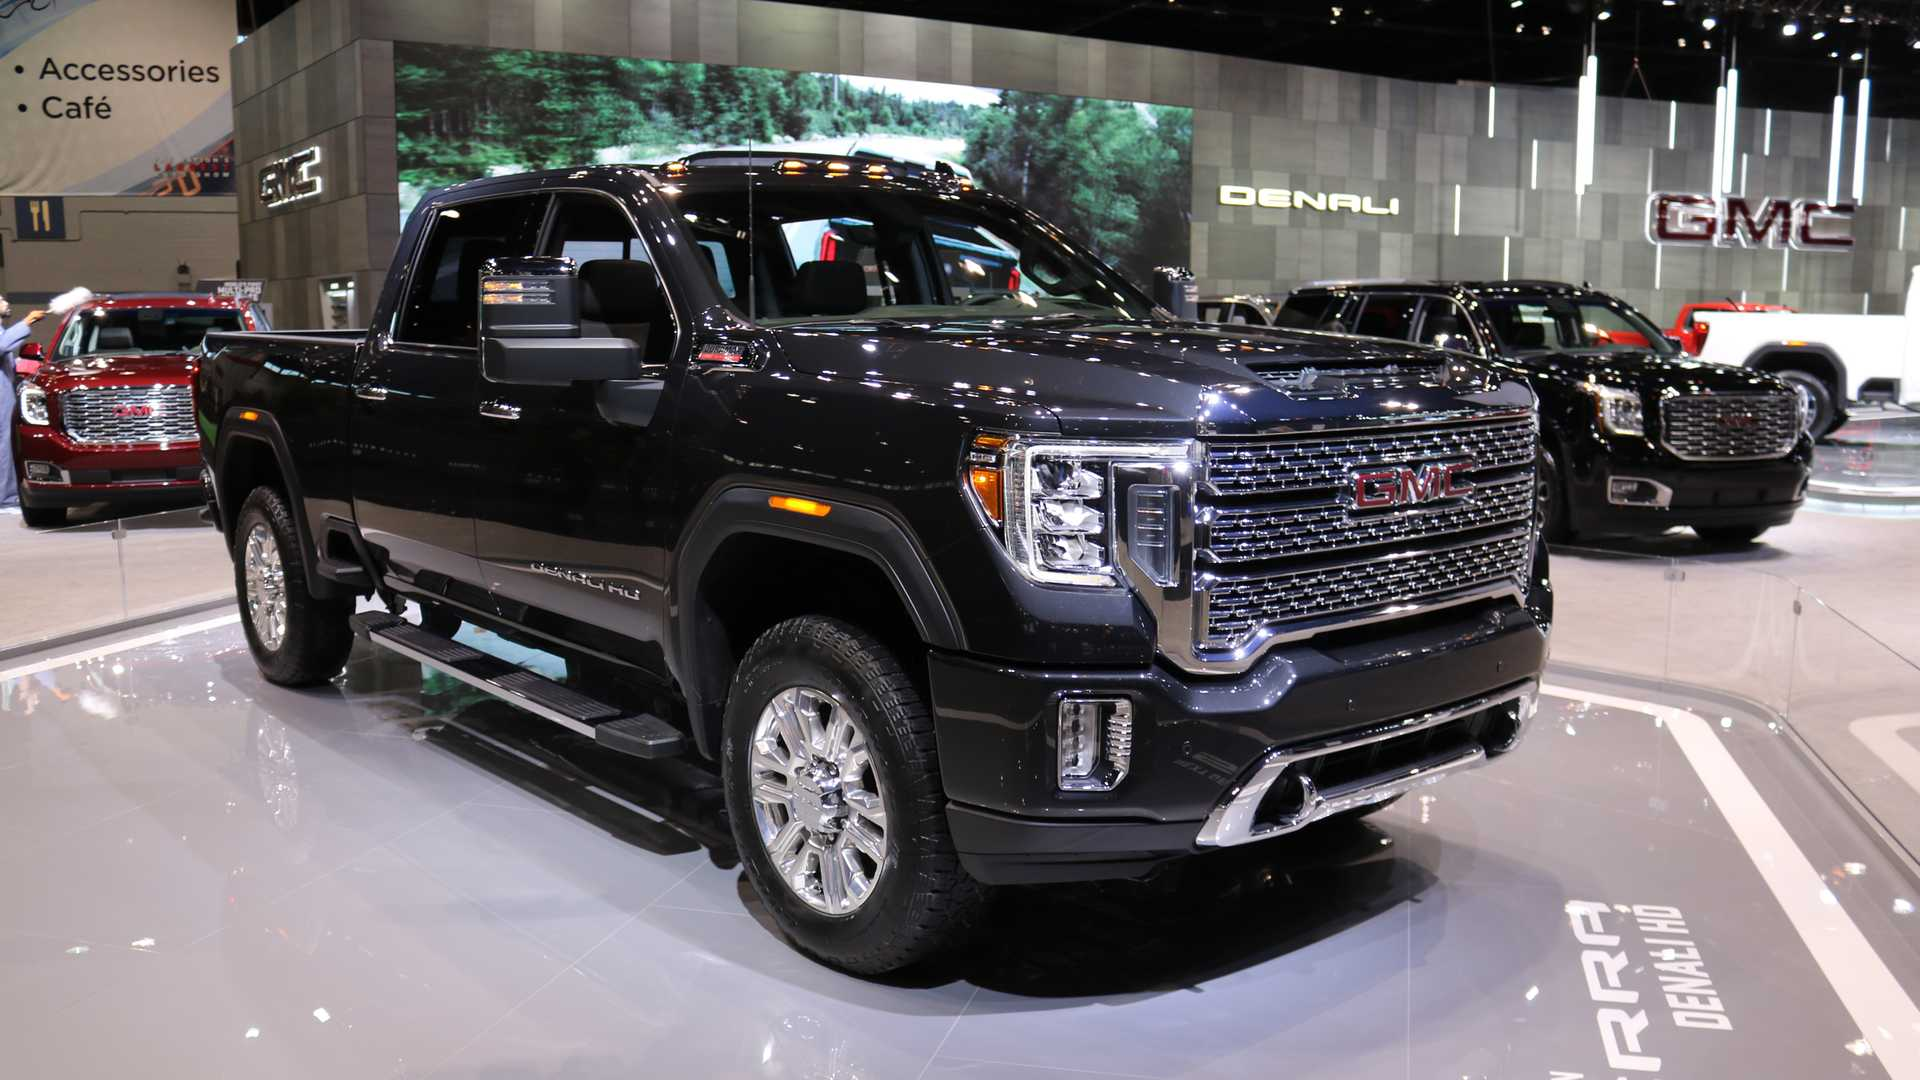 26 New 2020 Gmc Sierra 2500 Engine Options Pictures with 2020 Gmc Sierra 2500 Engine Options